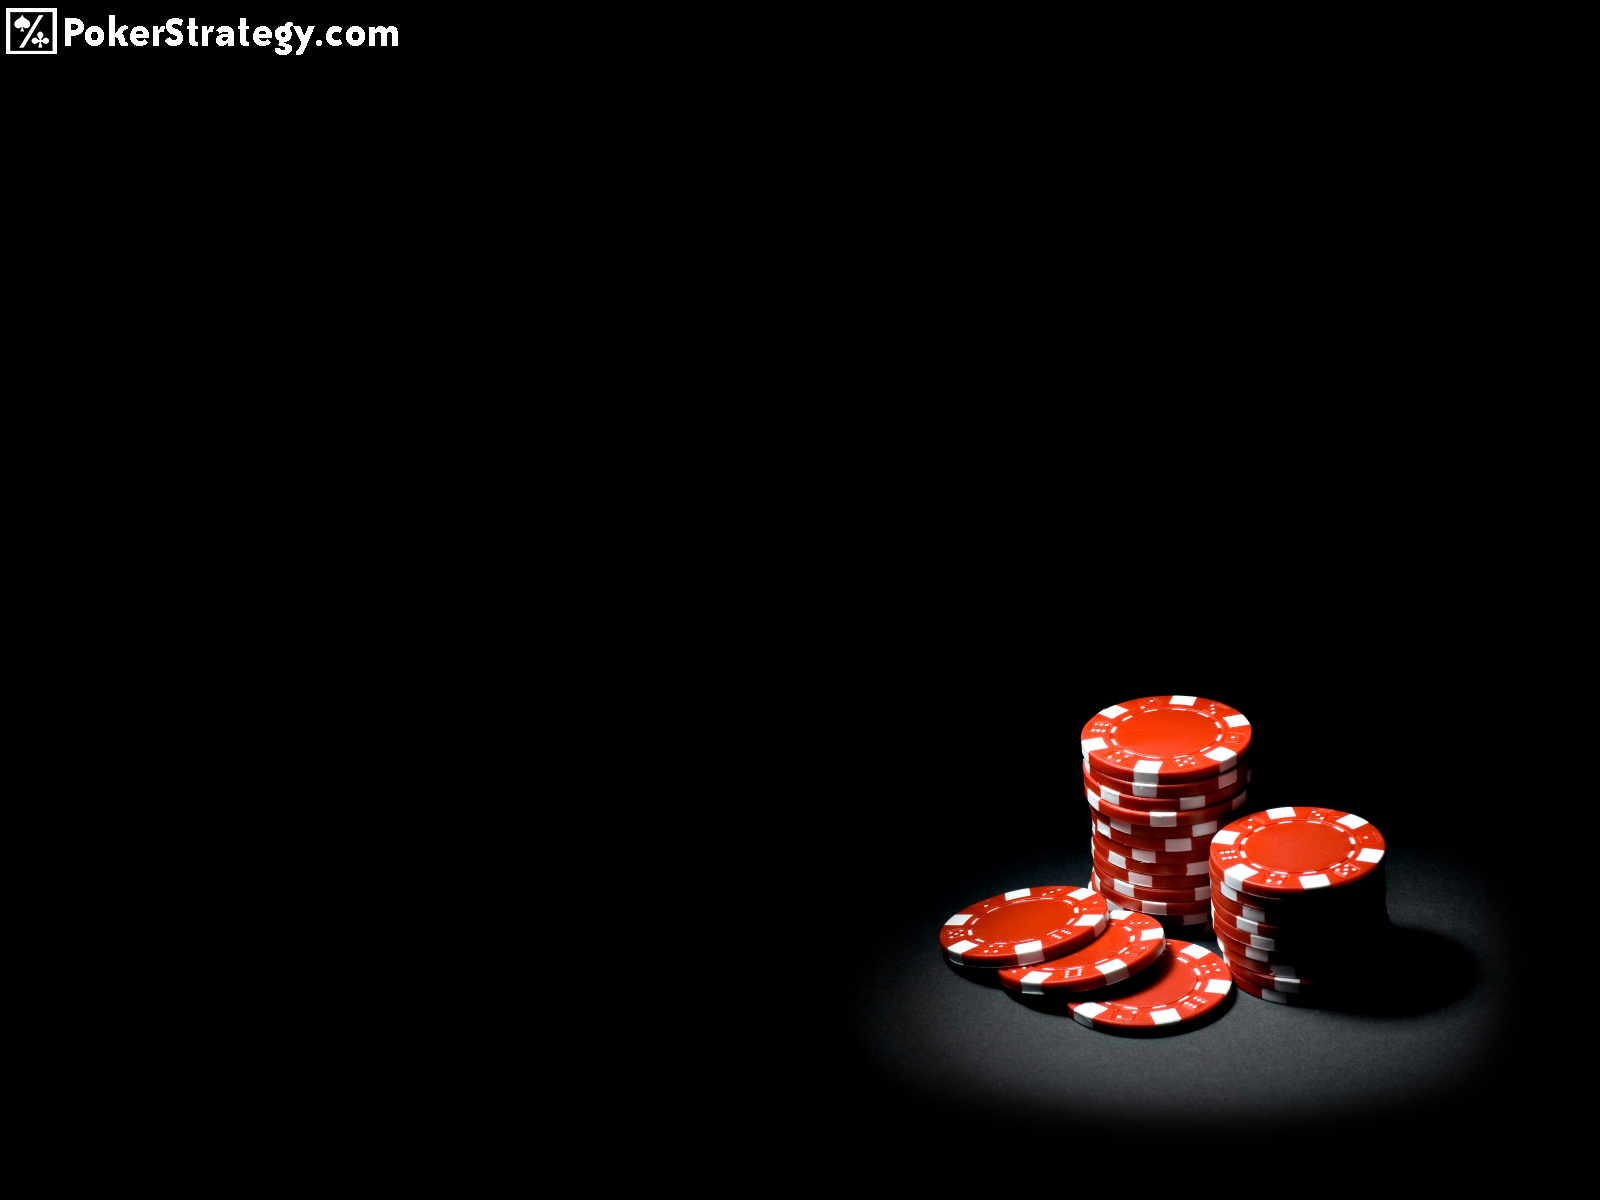 Casino Chips Wallpaper Images &amp Pictures  Becuo